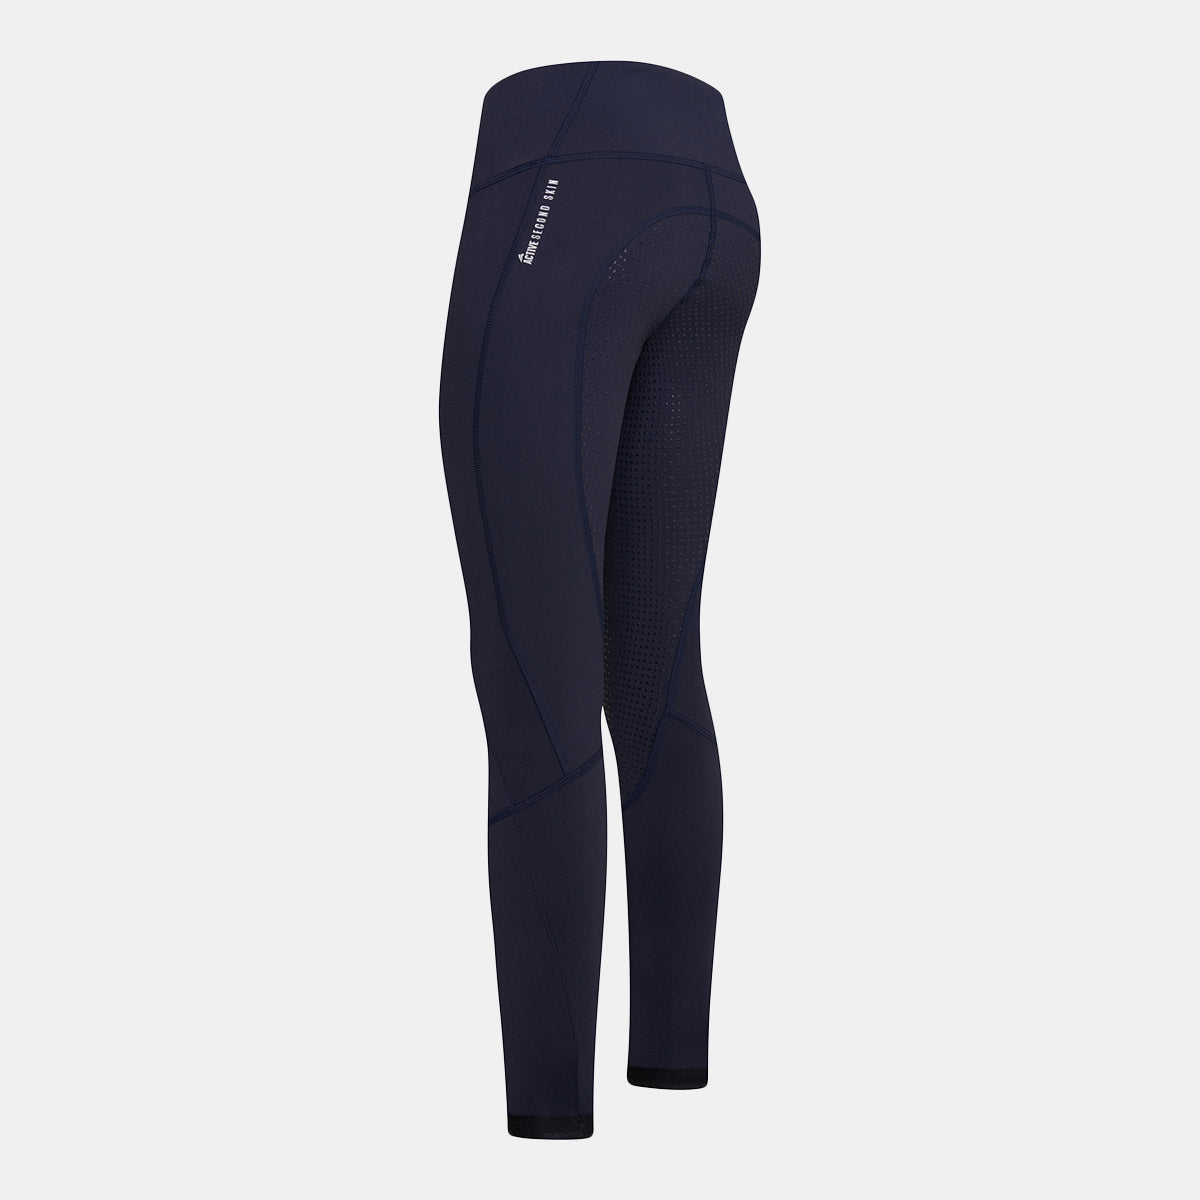 Euro-Star Sea Breeze Full-Grip Riding Tights - Navy